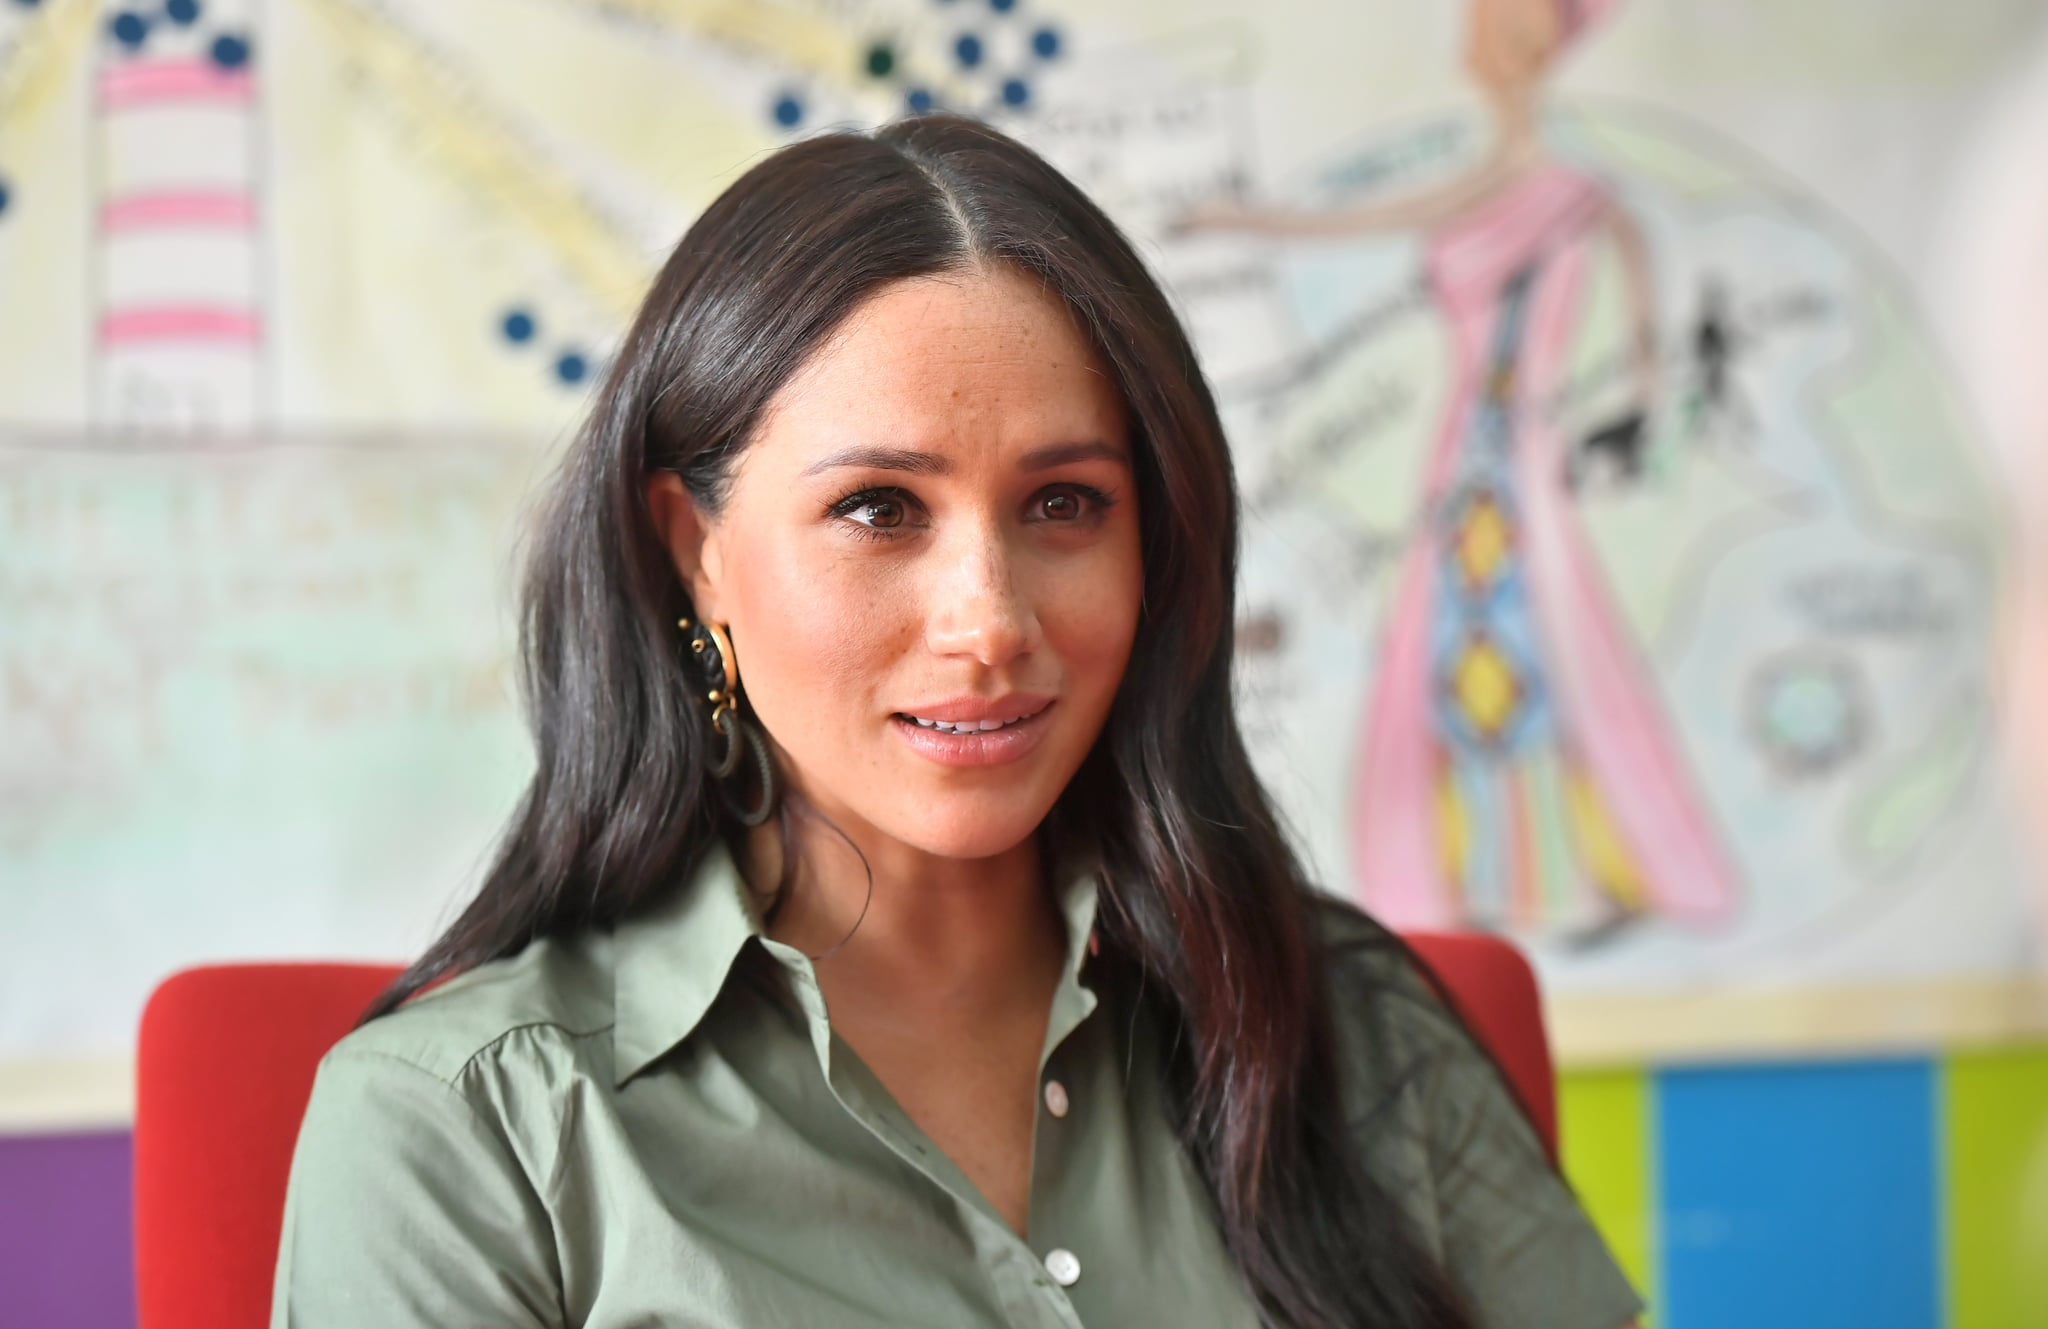 JOHANNESBURG, SOUTH AFRICA - OCTOBER 01: Meghan, Duchess of Sussex joins a conversation to discuss the nature of violence against women and girls while she visits ActionAid during the royal tour of South Africa on October 01, 2019 in Johannesburg, South Africa.  (Photo by Samir Hussein/WireImage)